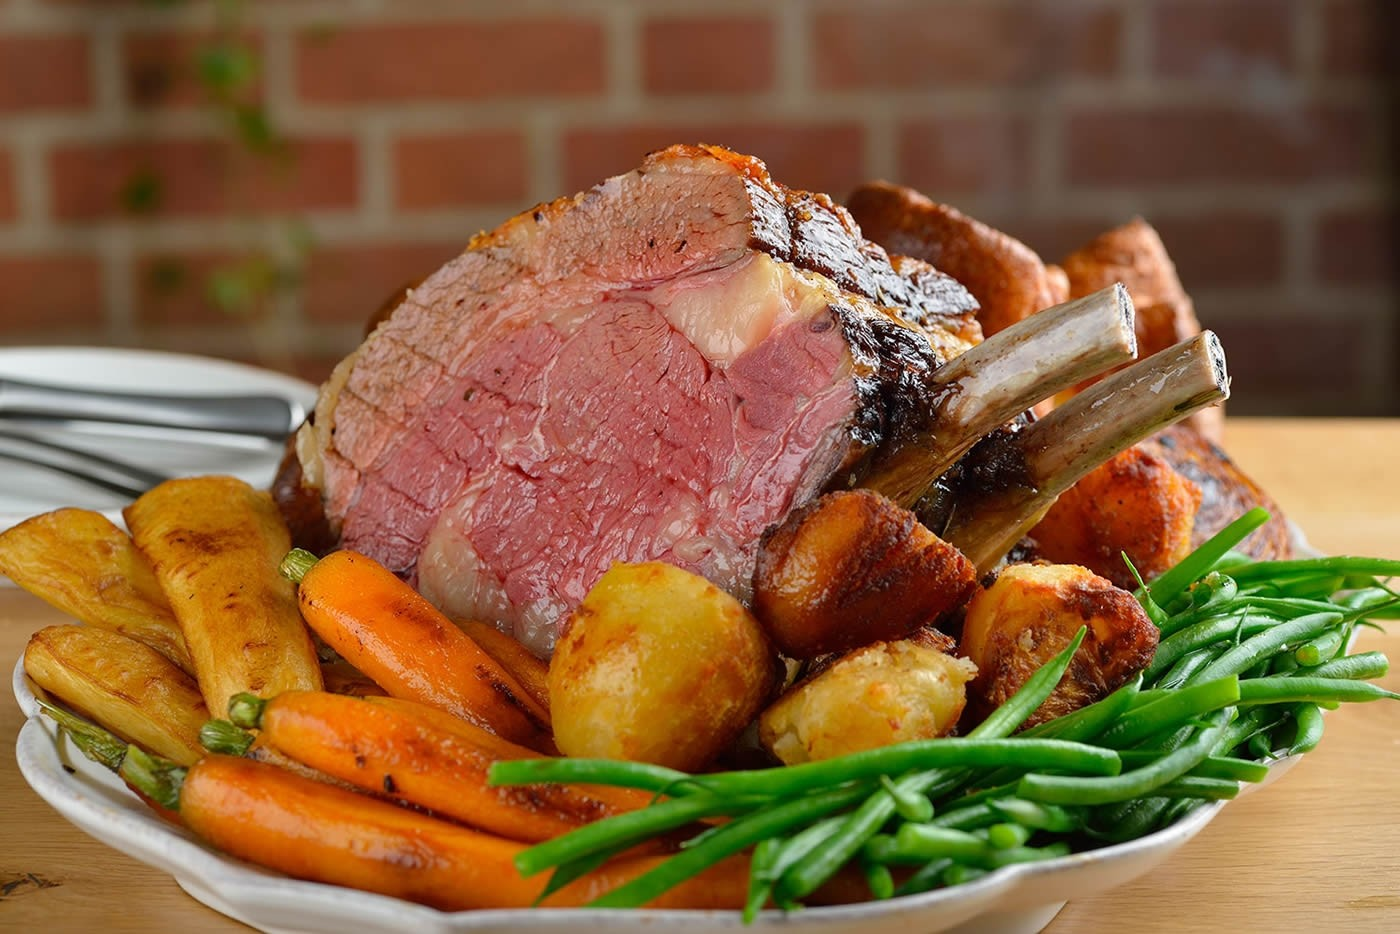 Sunday Lunch, St Albans Hemel Hempstead Hertfordshire at Centurion Club are a perfect way to spend a relaxed afternoon with the family